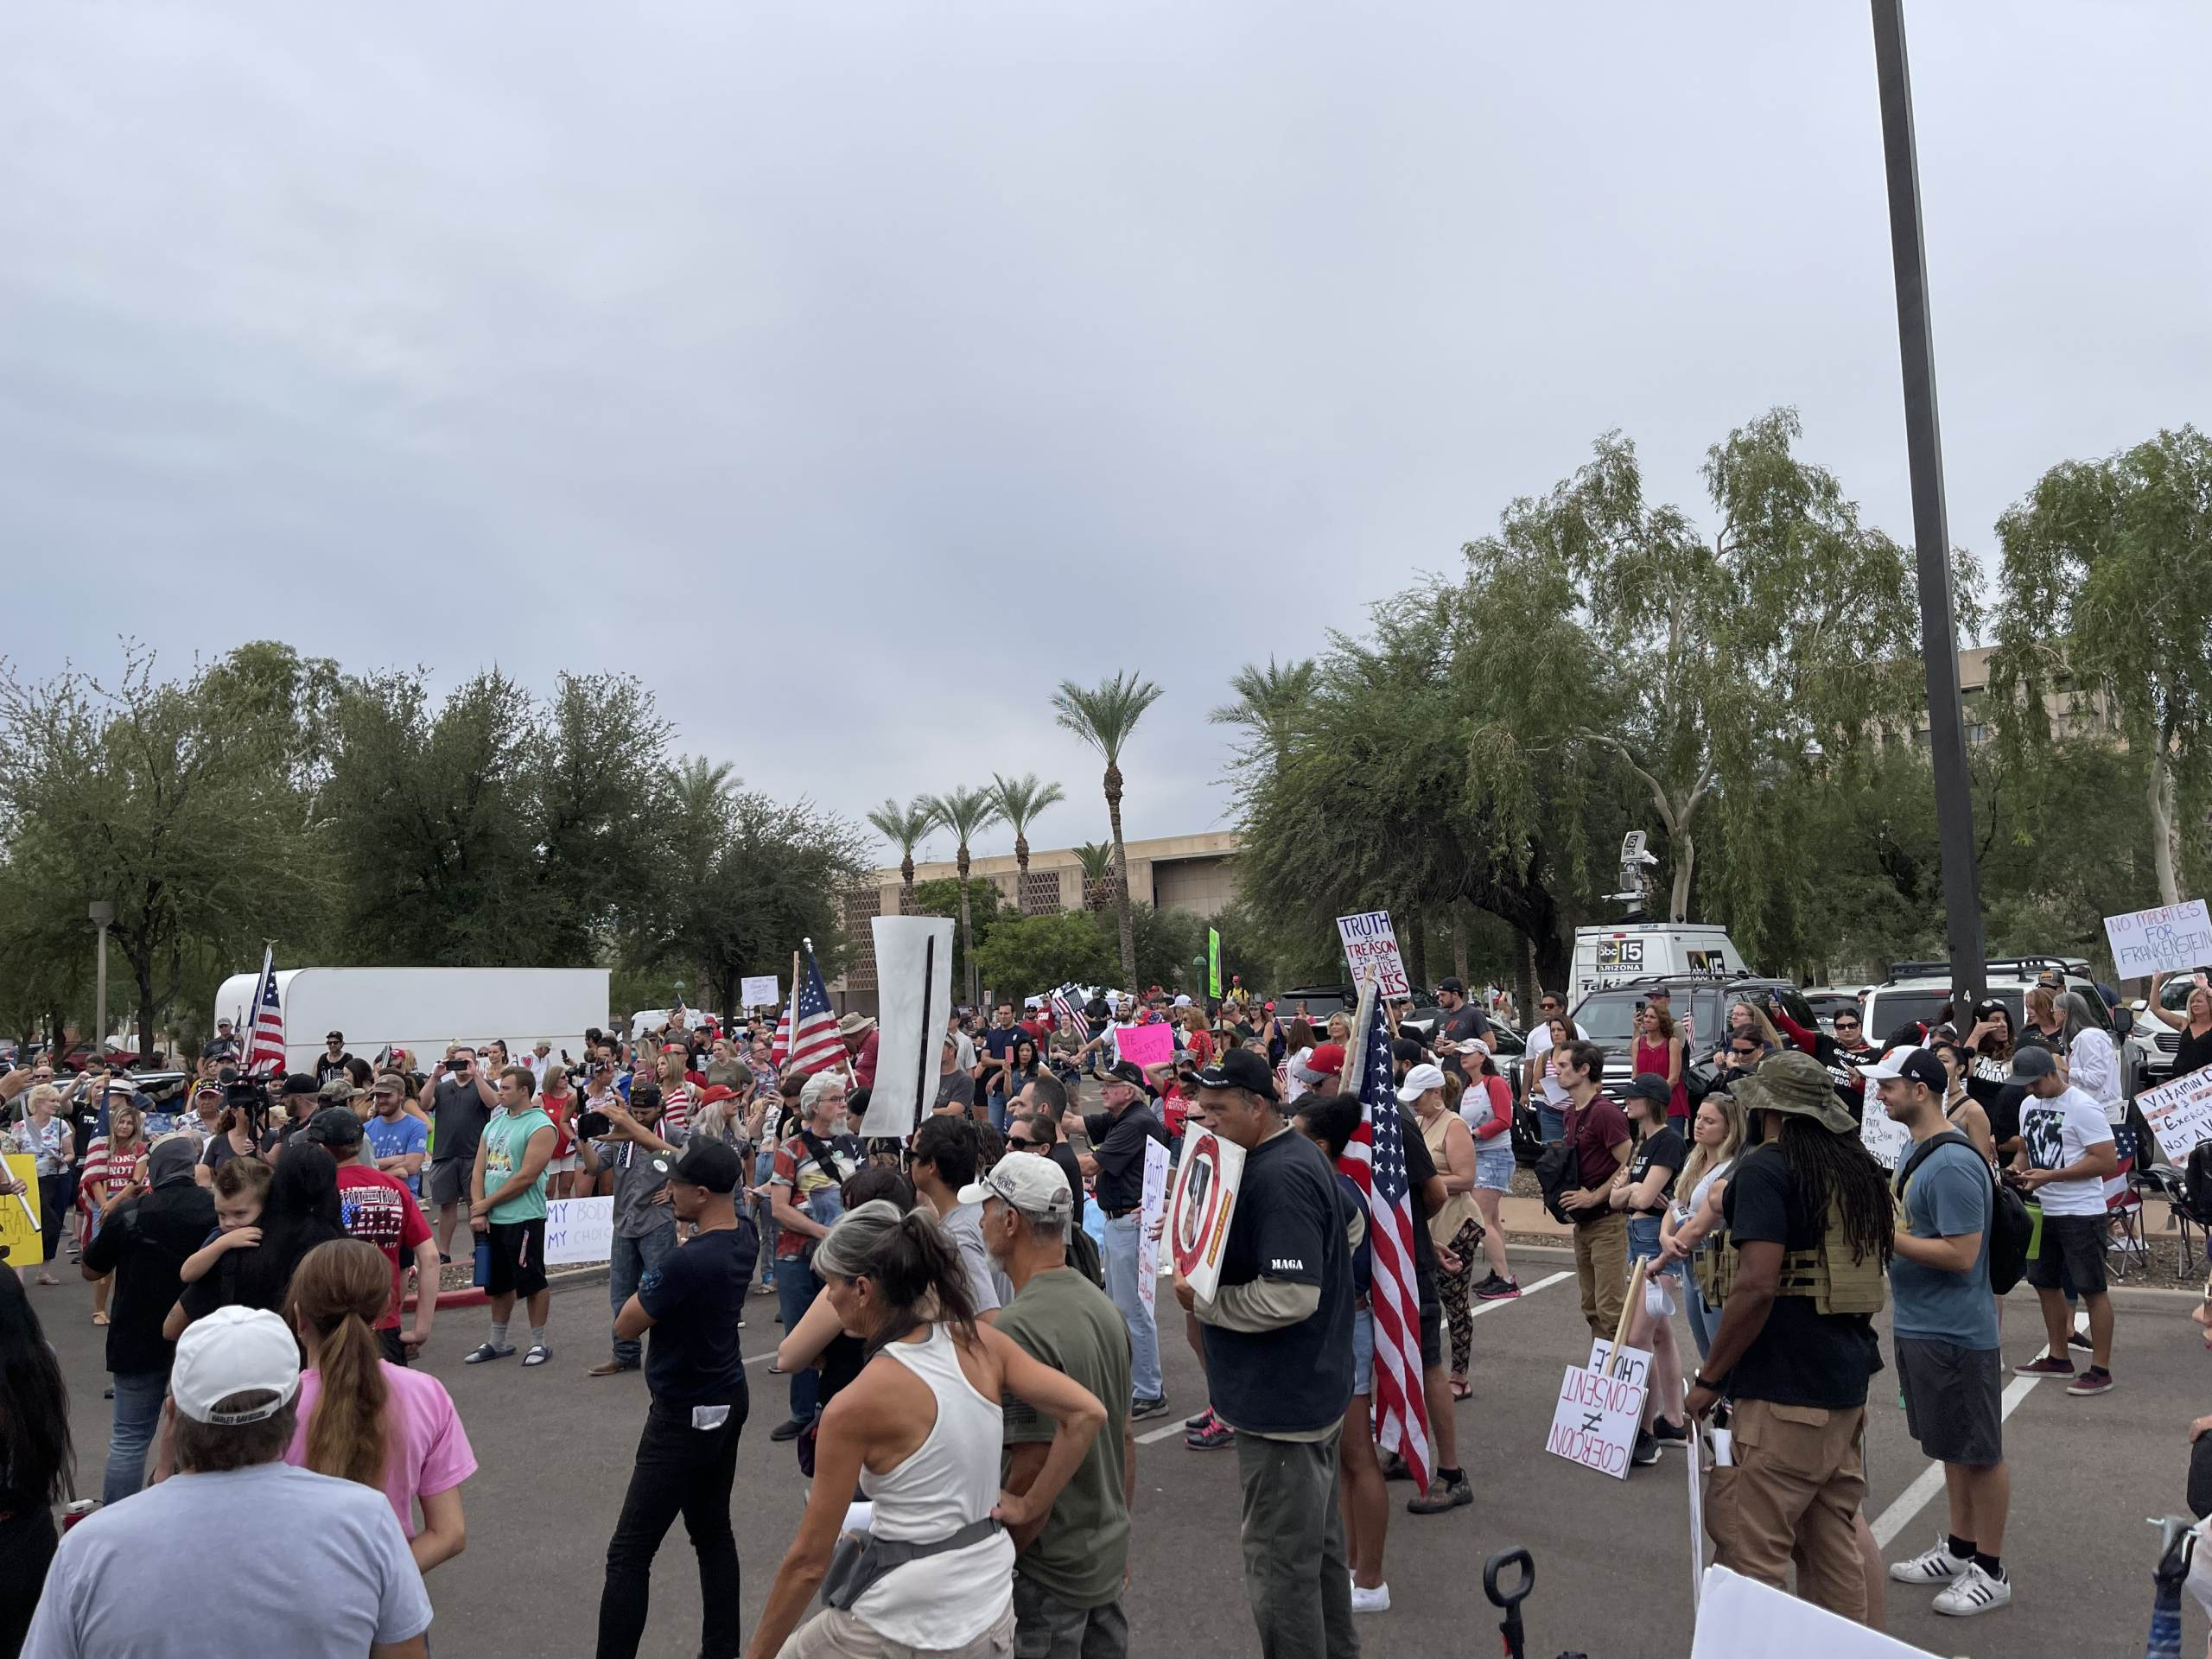 HUGE RALLY Forms Outside Arizona Senate Hearing — AZ Patriots Come Out in Force as Audit Exposes Massive Fraud in 2020 Election